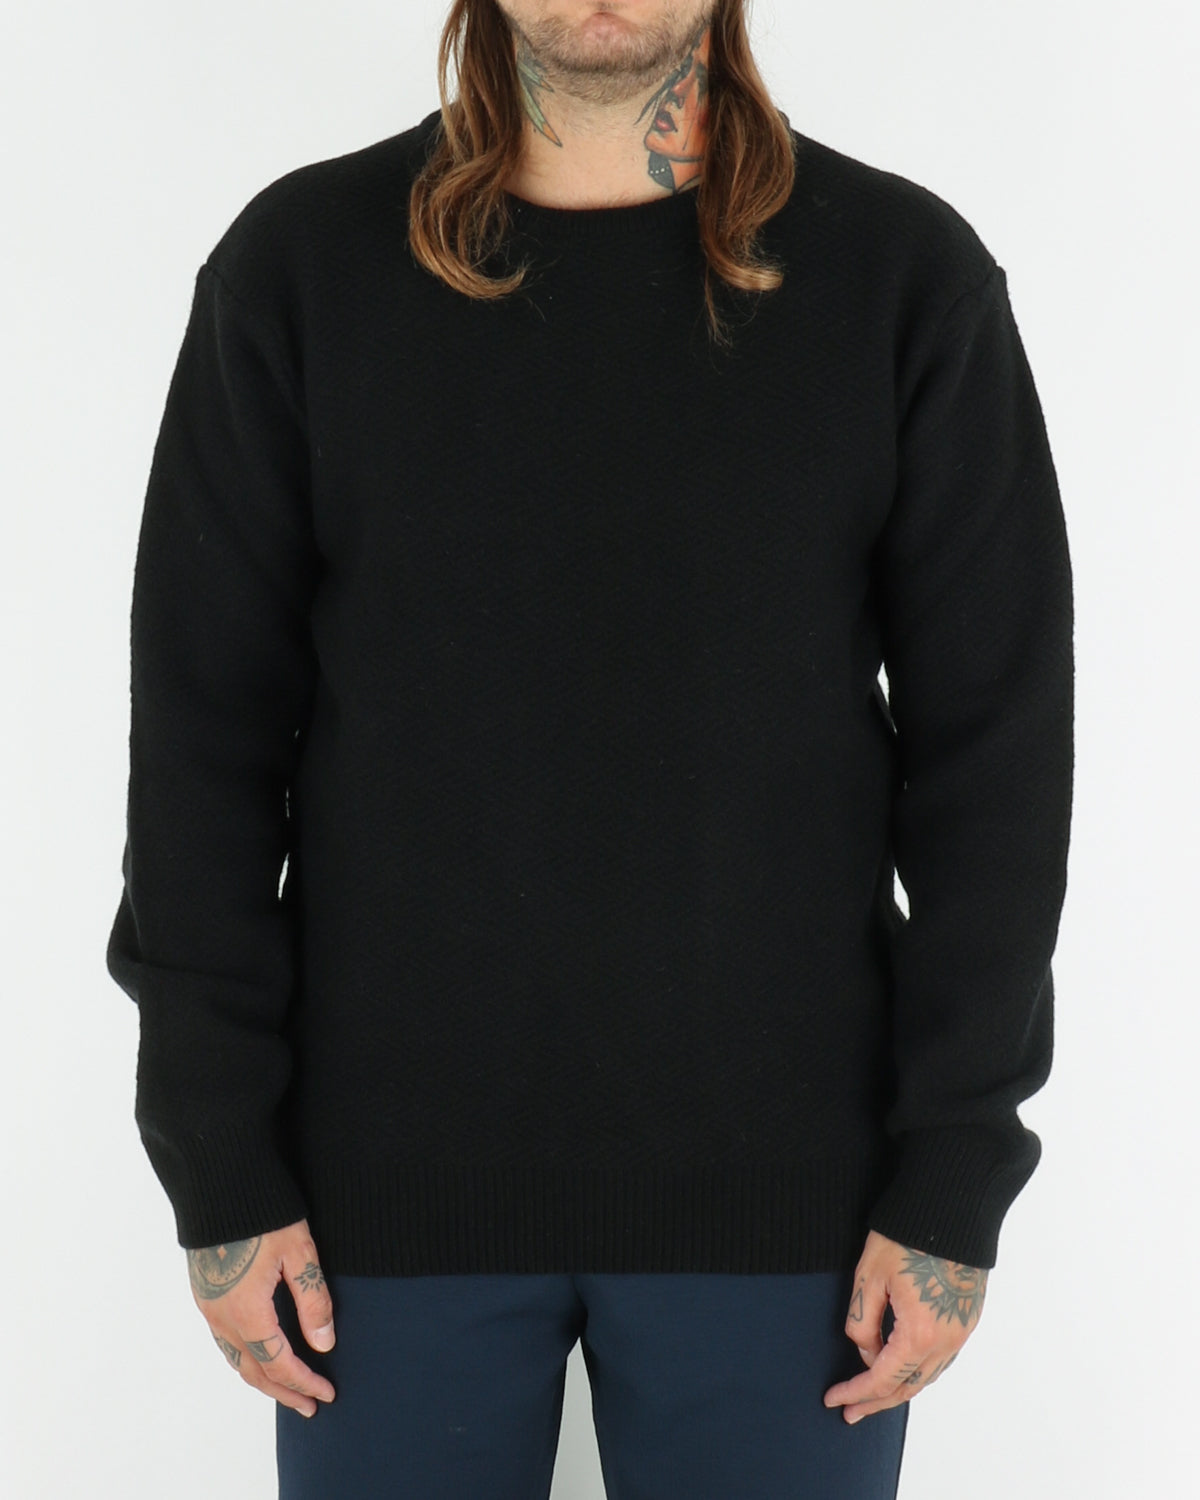 soulland_cassidy herringbone sweater_black_view_1_3